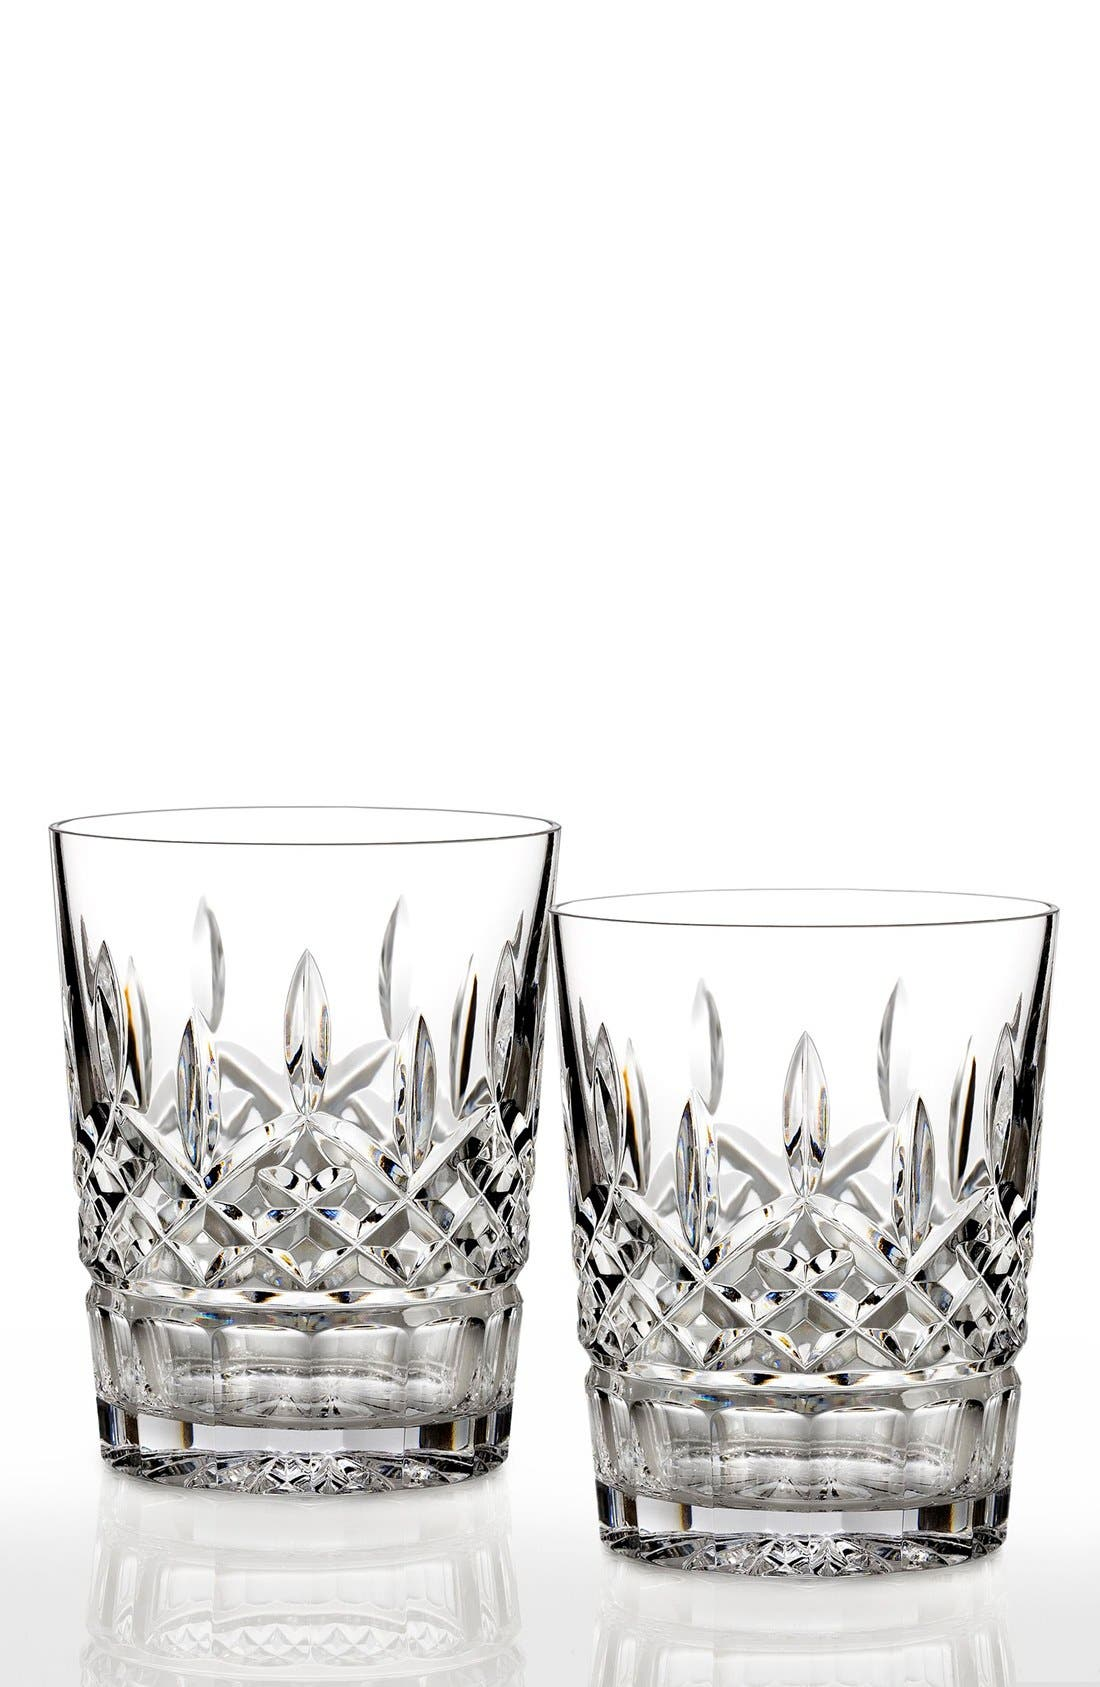 Alternate Image 1 Selected - Waterford 'Lismore' Lead Crystal Double Old Fashioned Glasses (Set of 2)